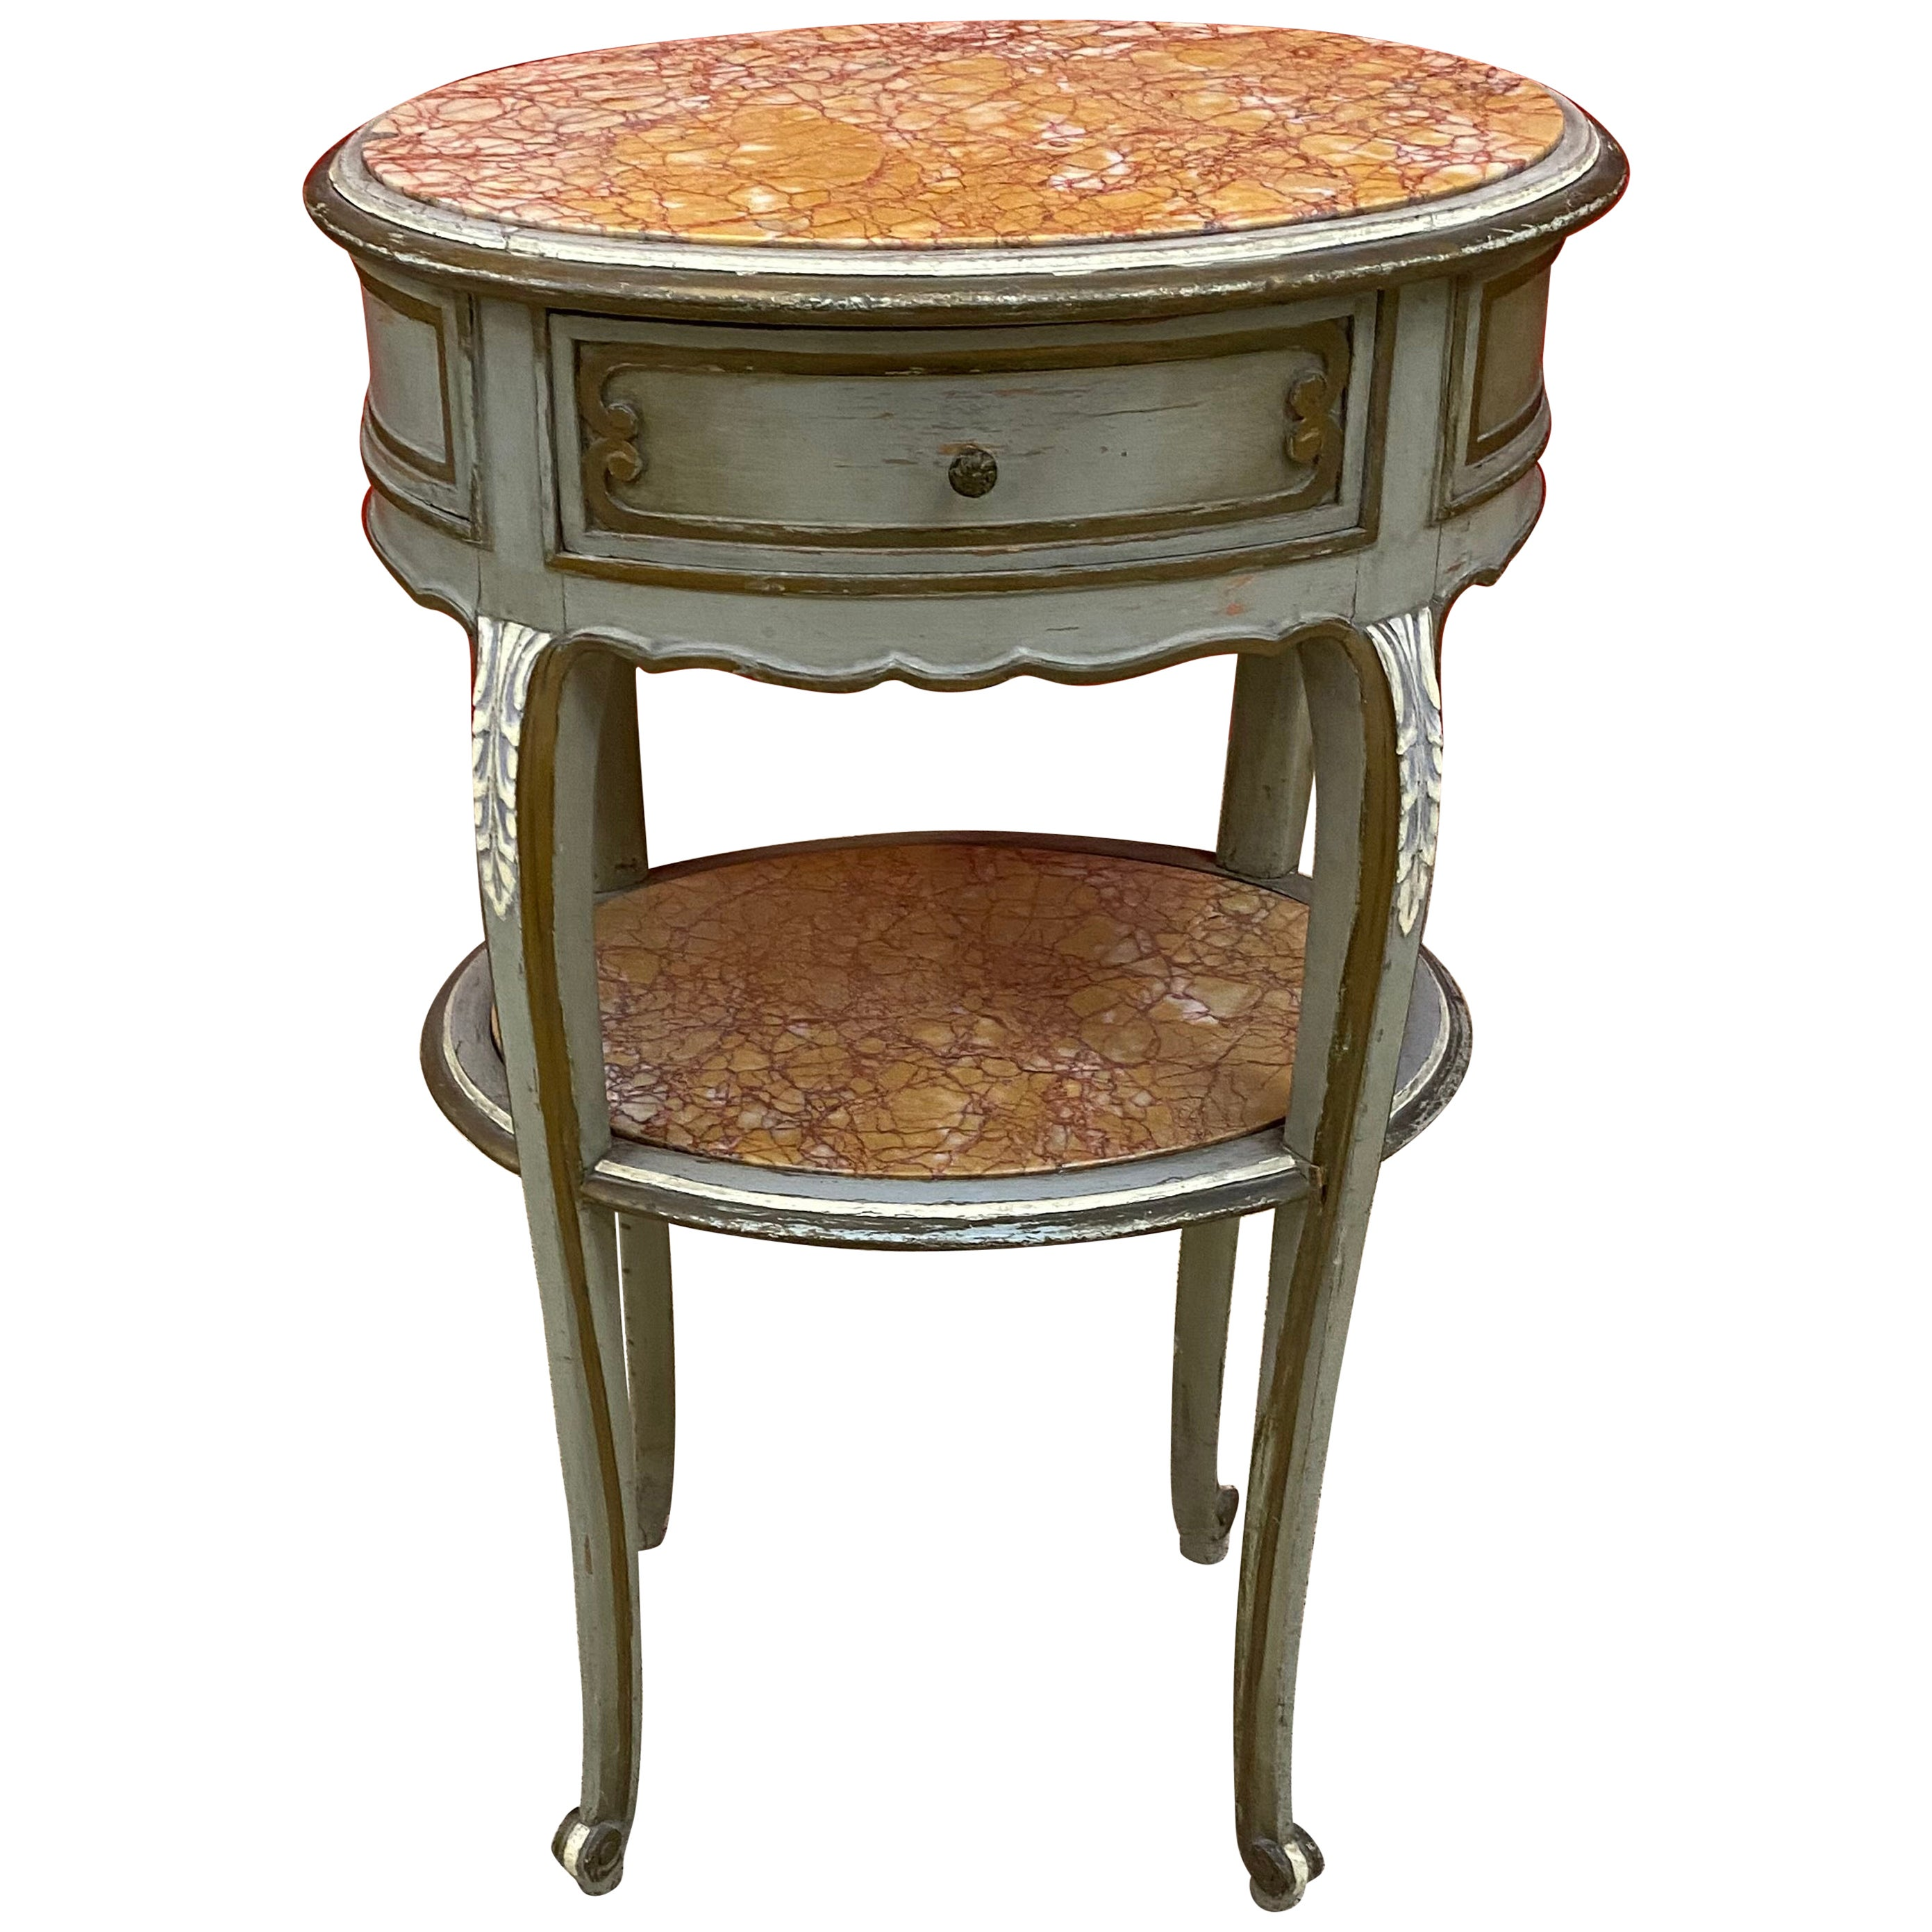 Louis XV Style Bedside Table or Side Table in Patinated Wood and Marble